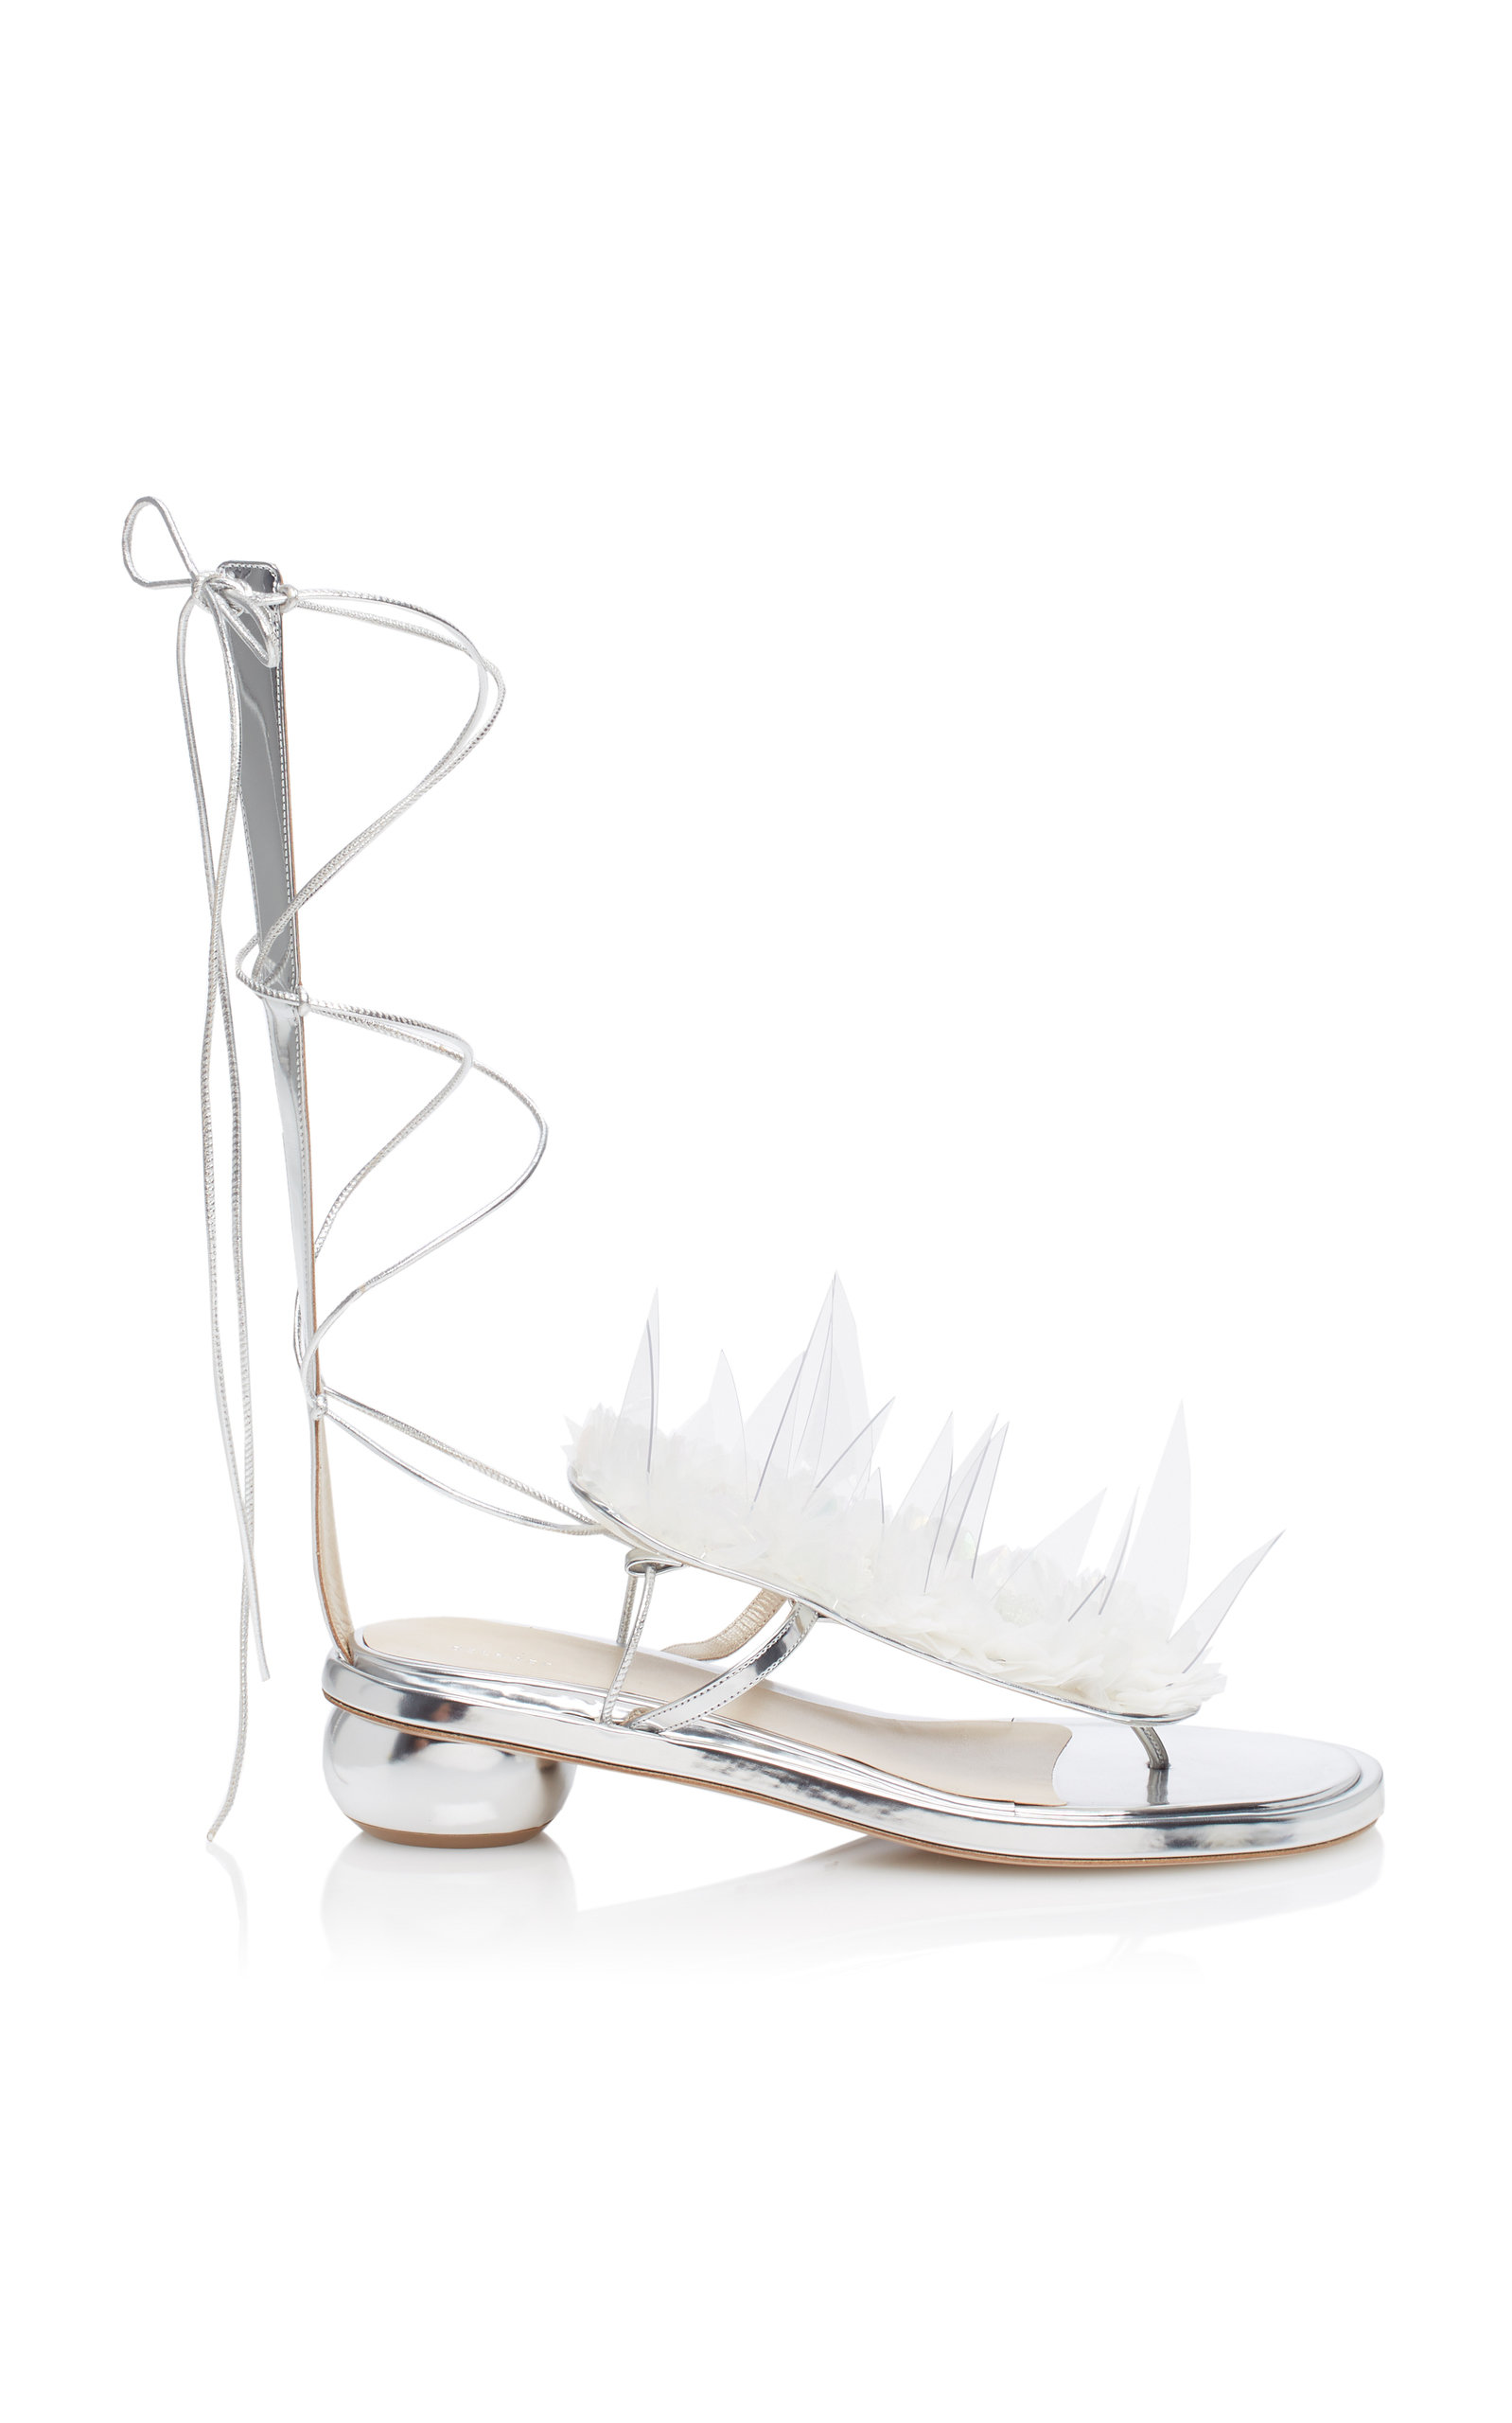 cc5f0f114a4587 Delpozo Lace-Up Mid-Heel Sandals In Silver